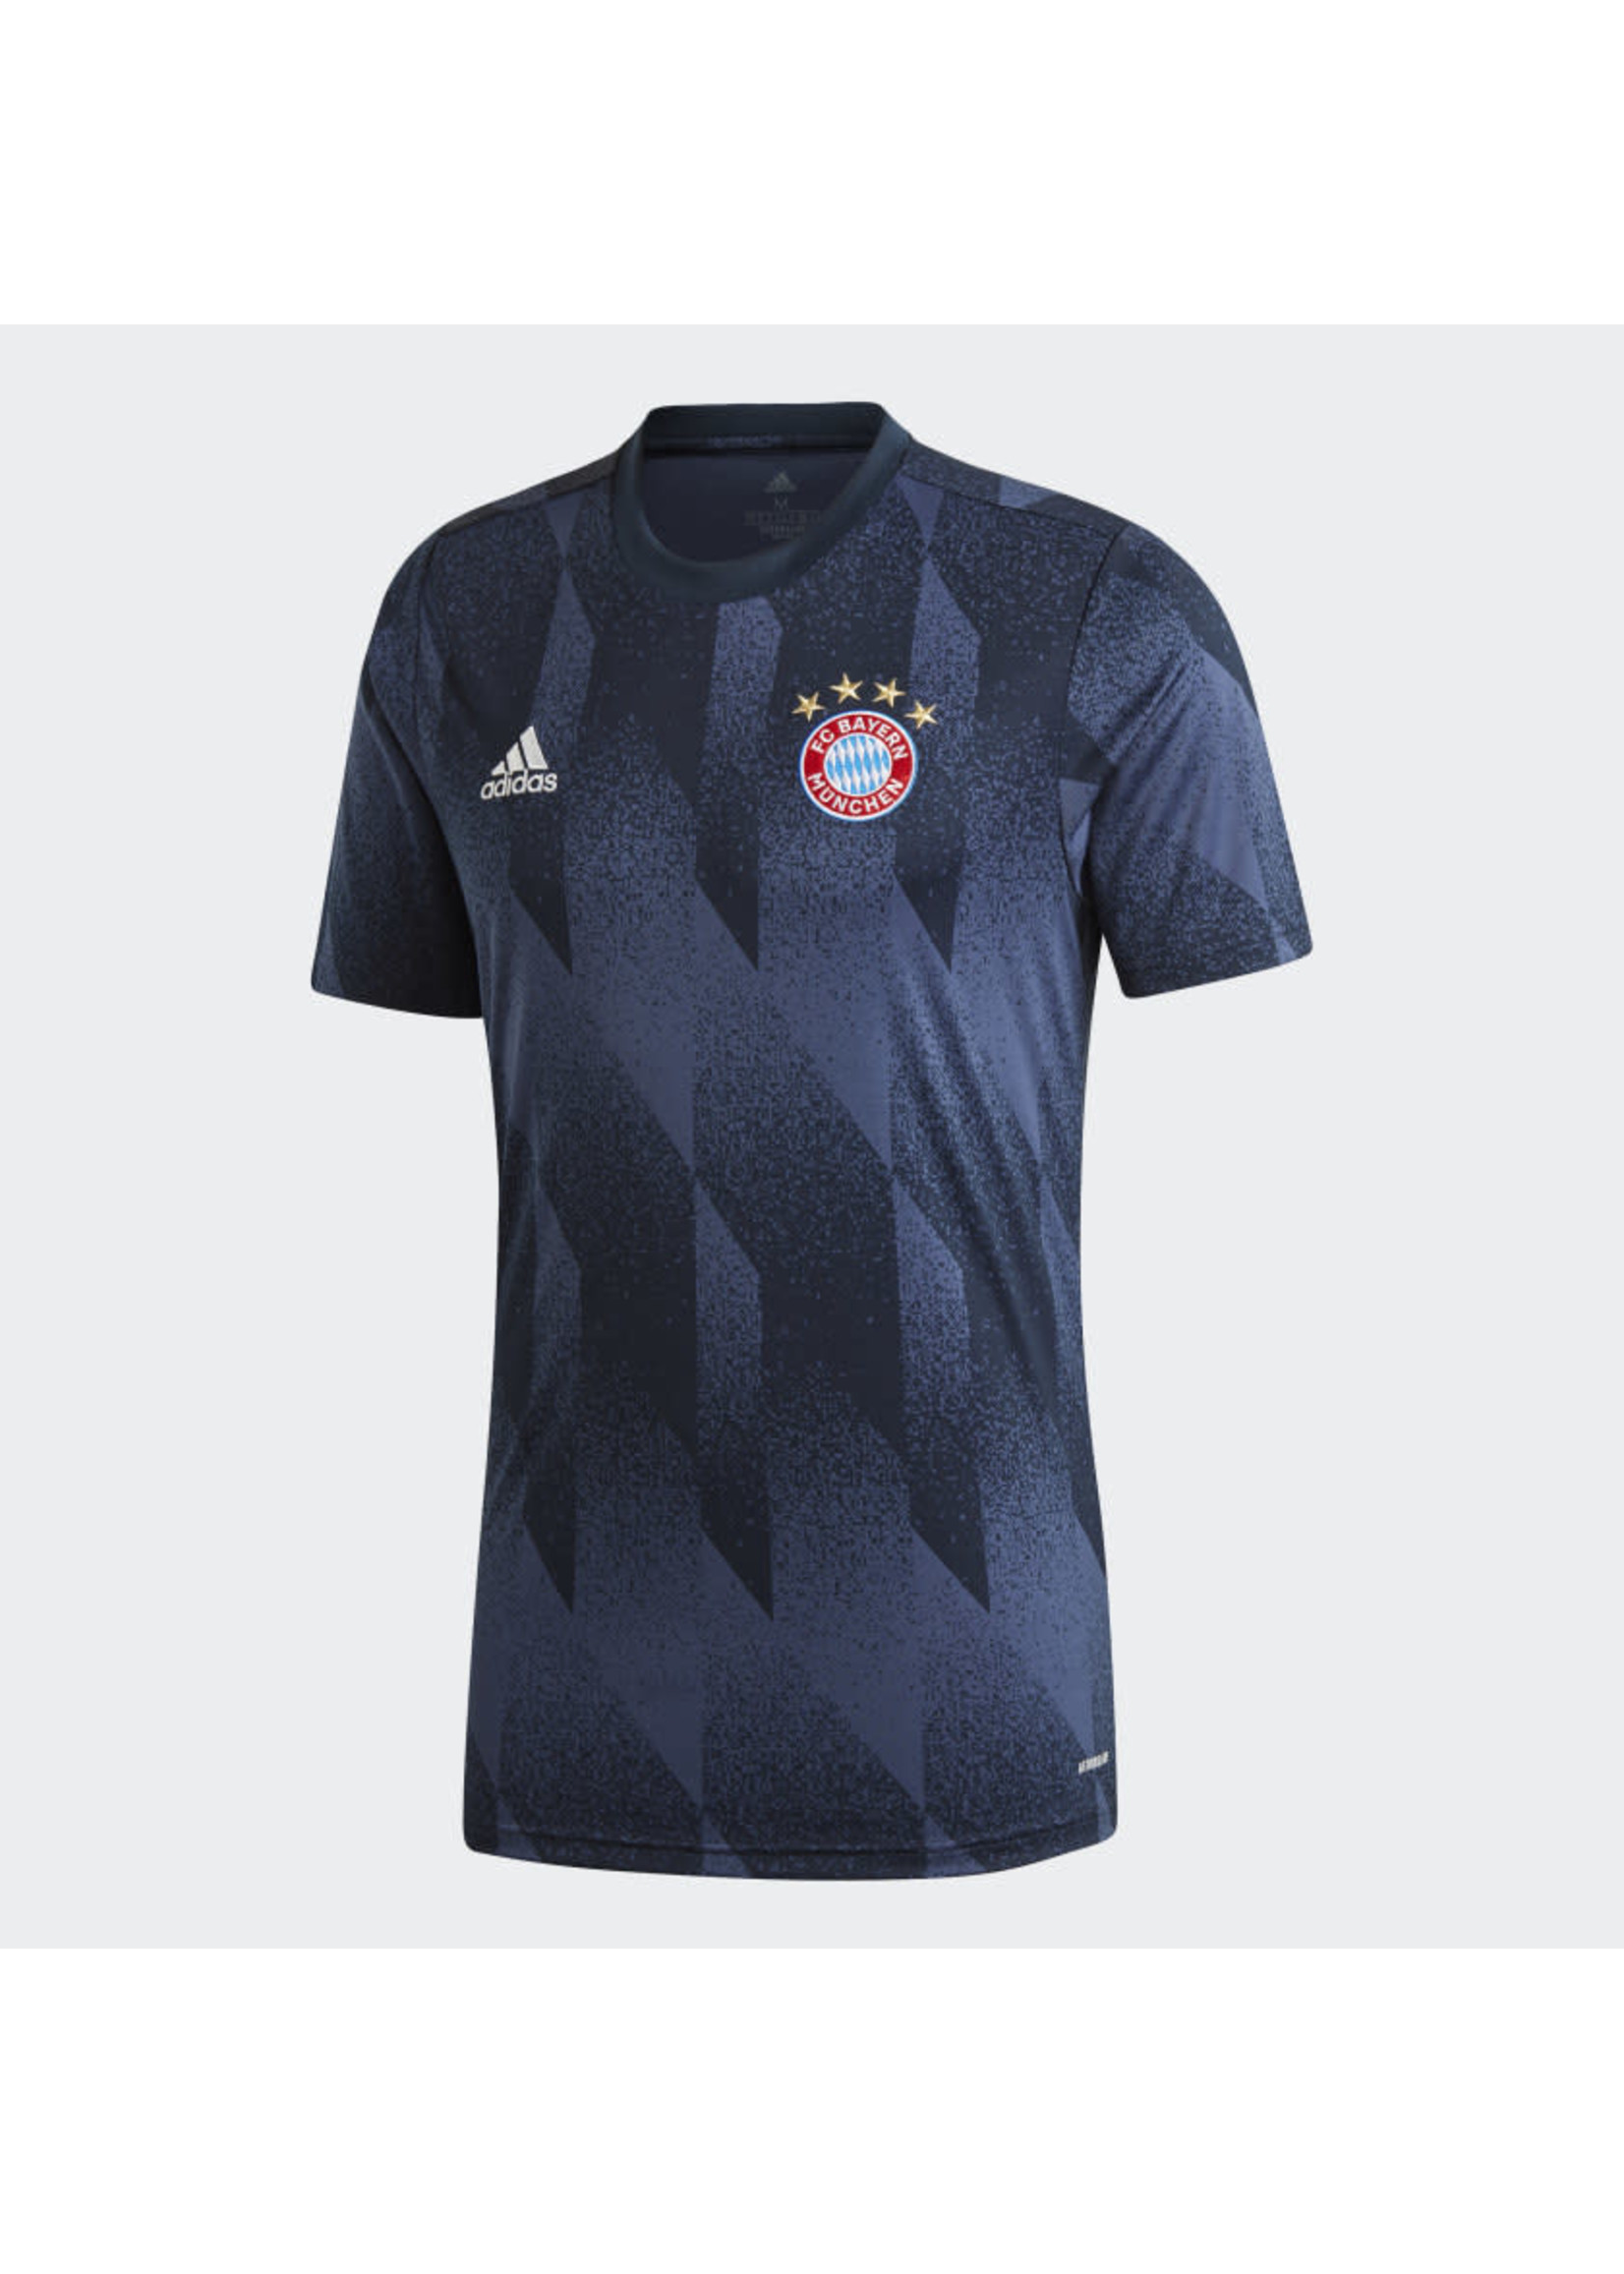 Adidas Bayern Munich 20/21 Training Jersey Adult